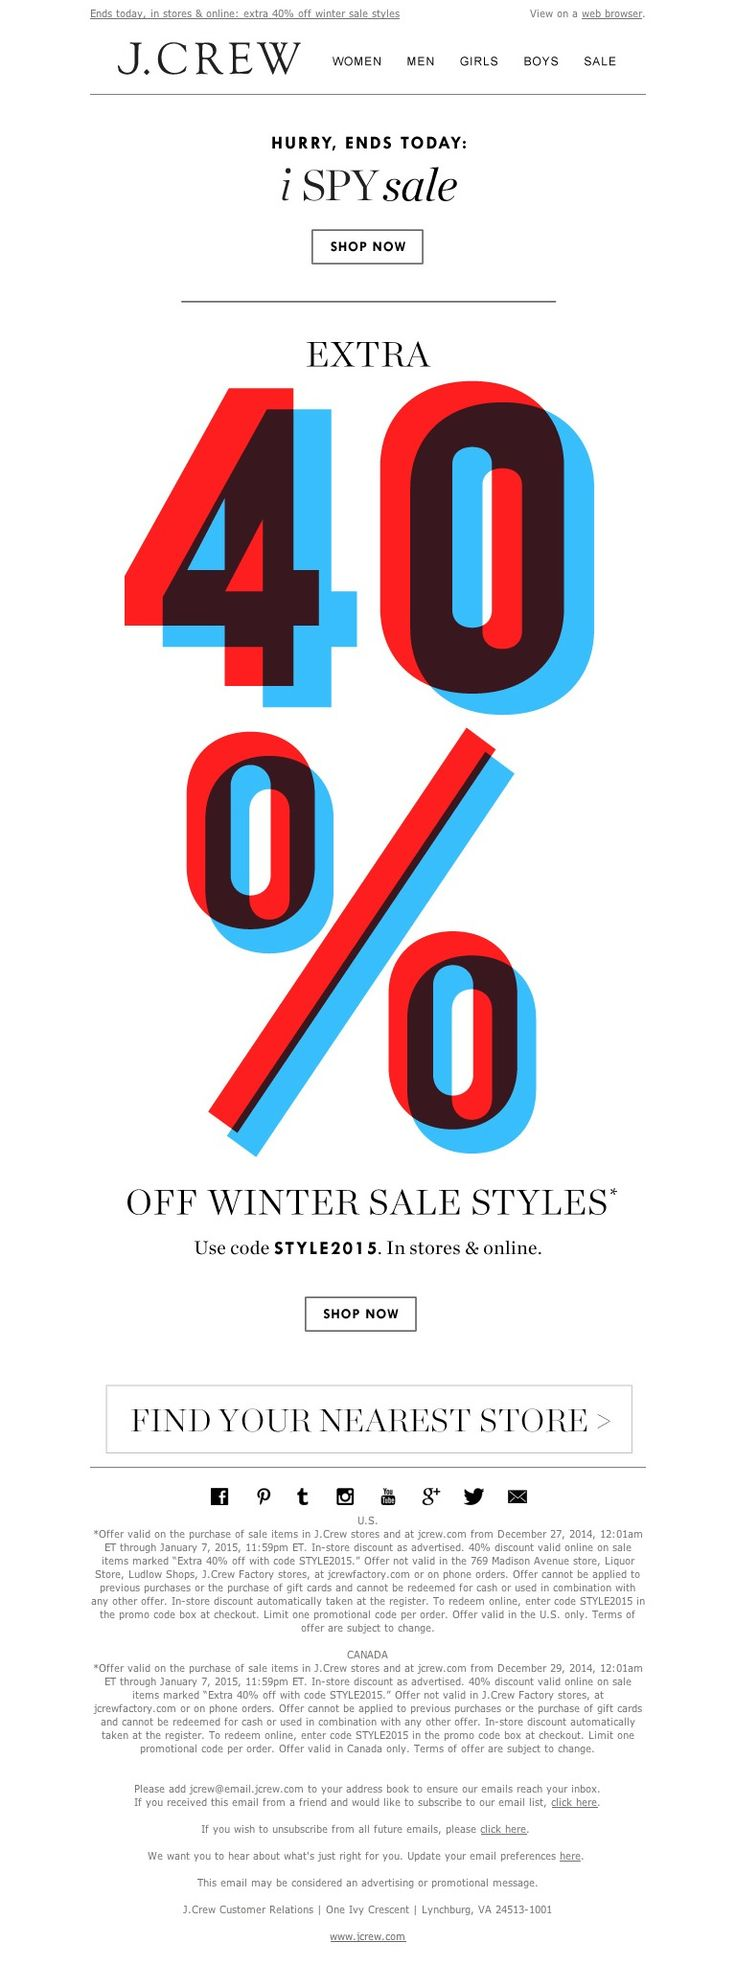 J.Crew - Last chance to get an extra 40% off winter sale styles